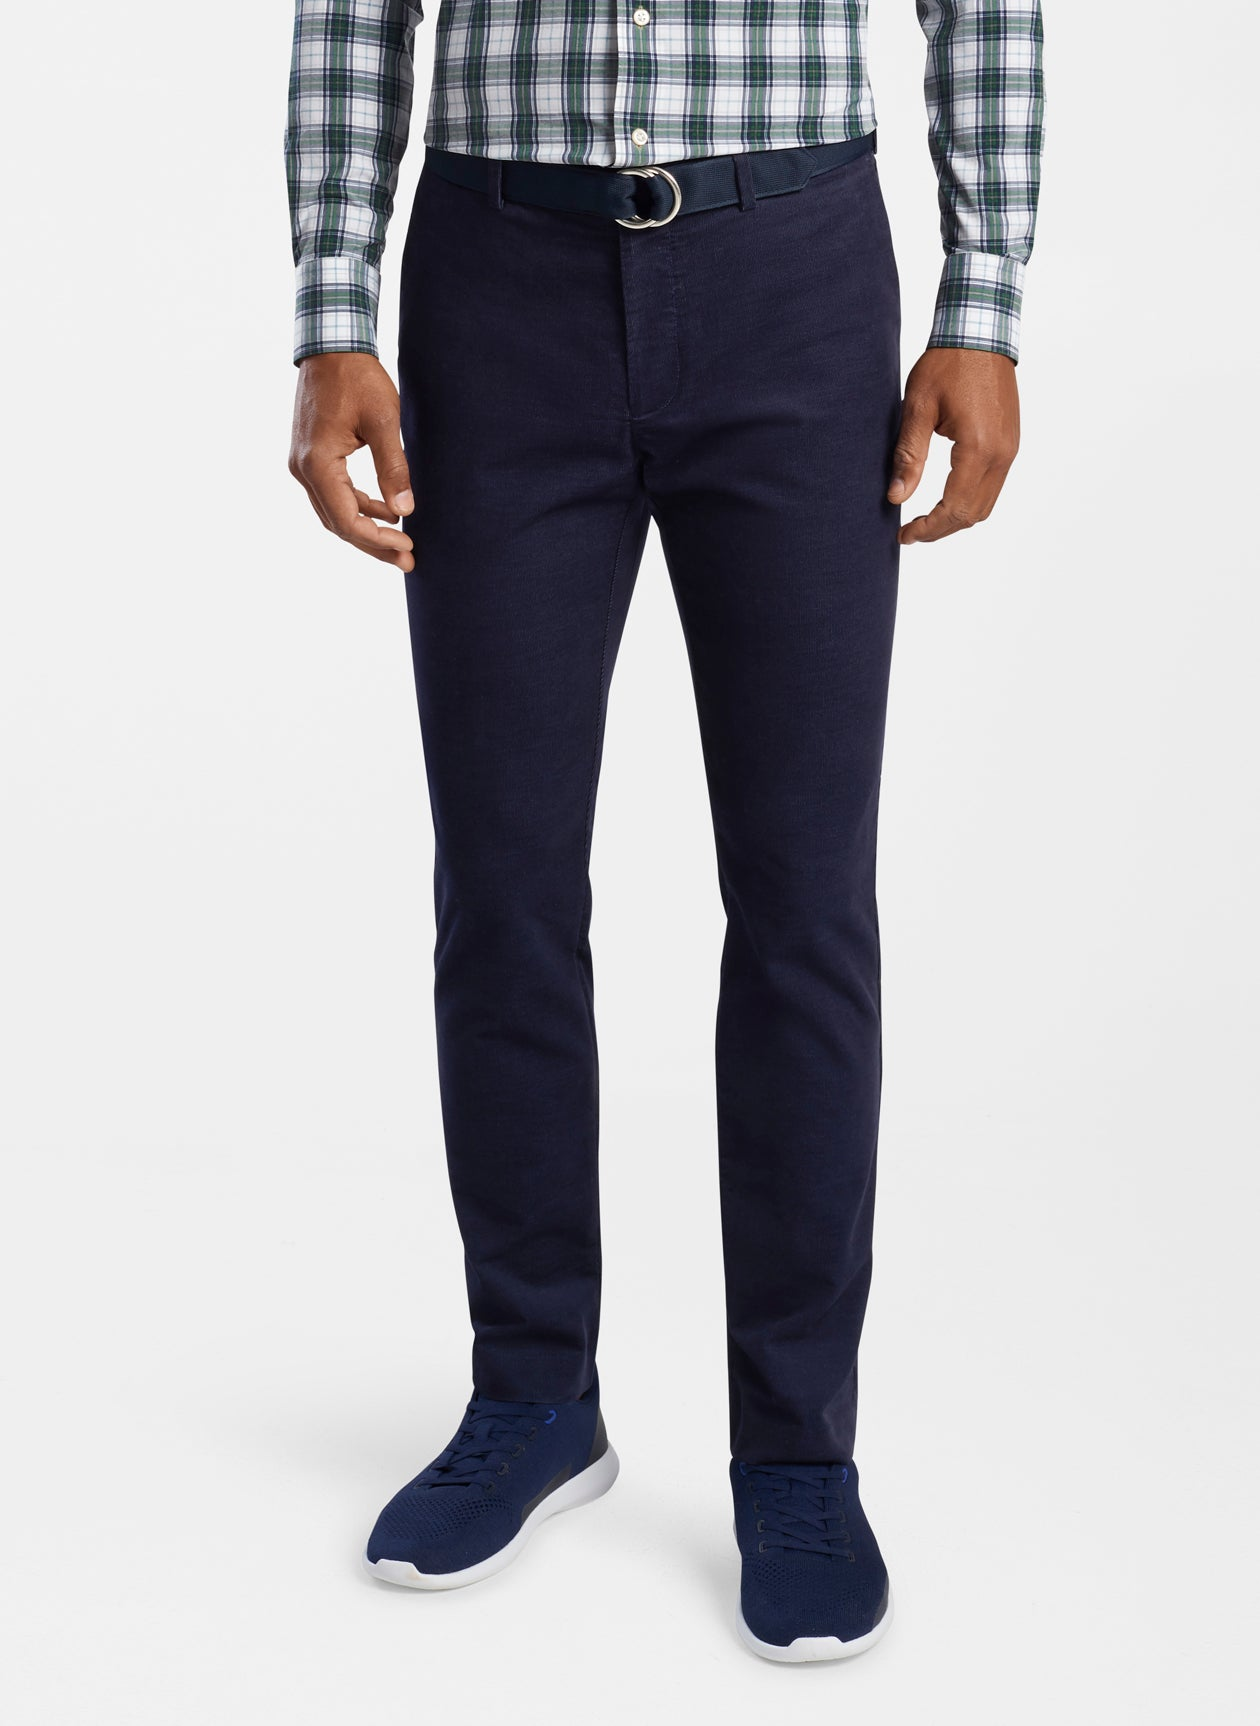 Crisman Performance Corduroy Trouser in Navy